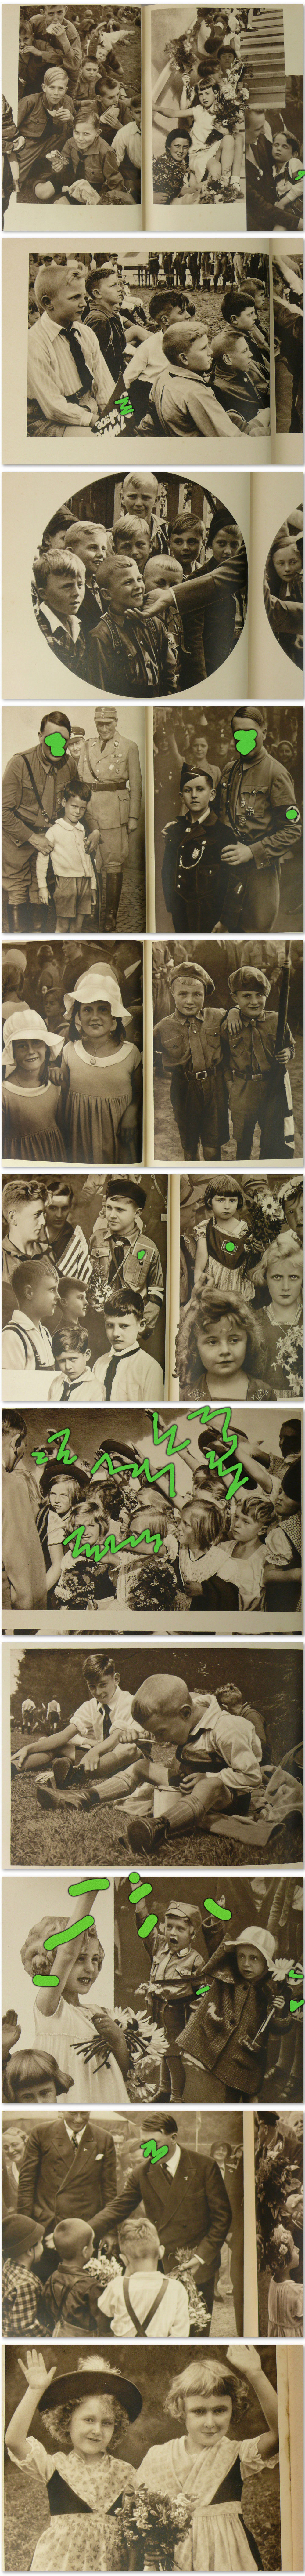 Photo Book Of German Children Hj 1930S, Girls And Boys -7582